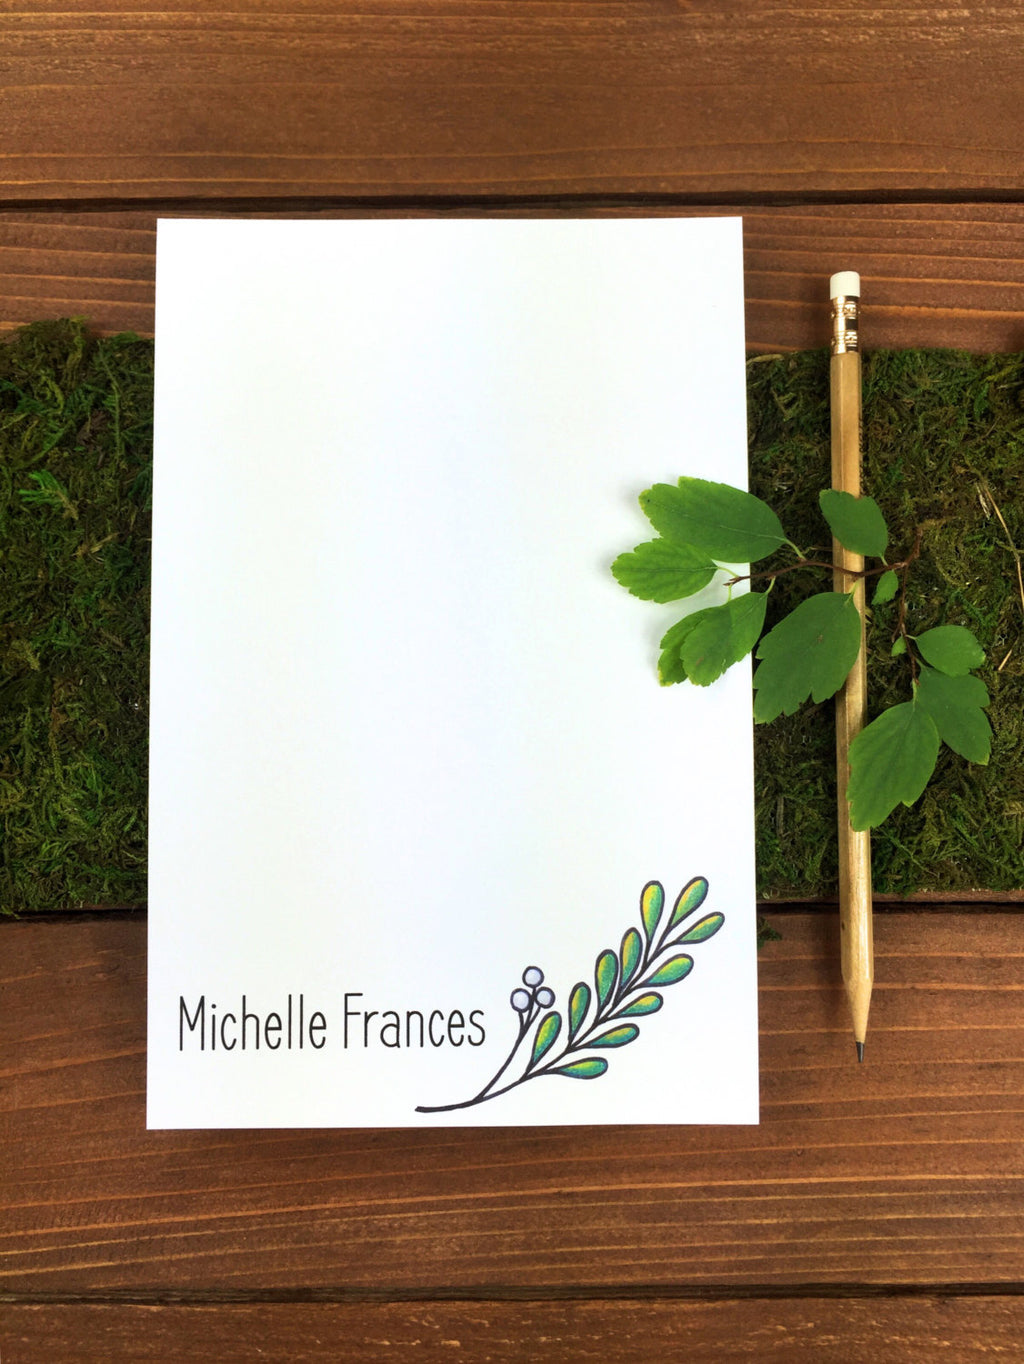 Twig Notepad - Personalized Hostess Gift, Mother In Law Gift, Gift Women, Nature Art Note Pad, Plants, Magnetic Notepad, Leaf - 5.5 x 8.5